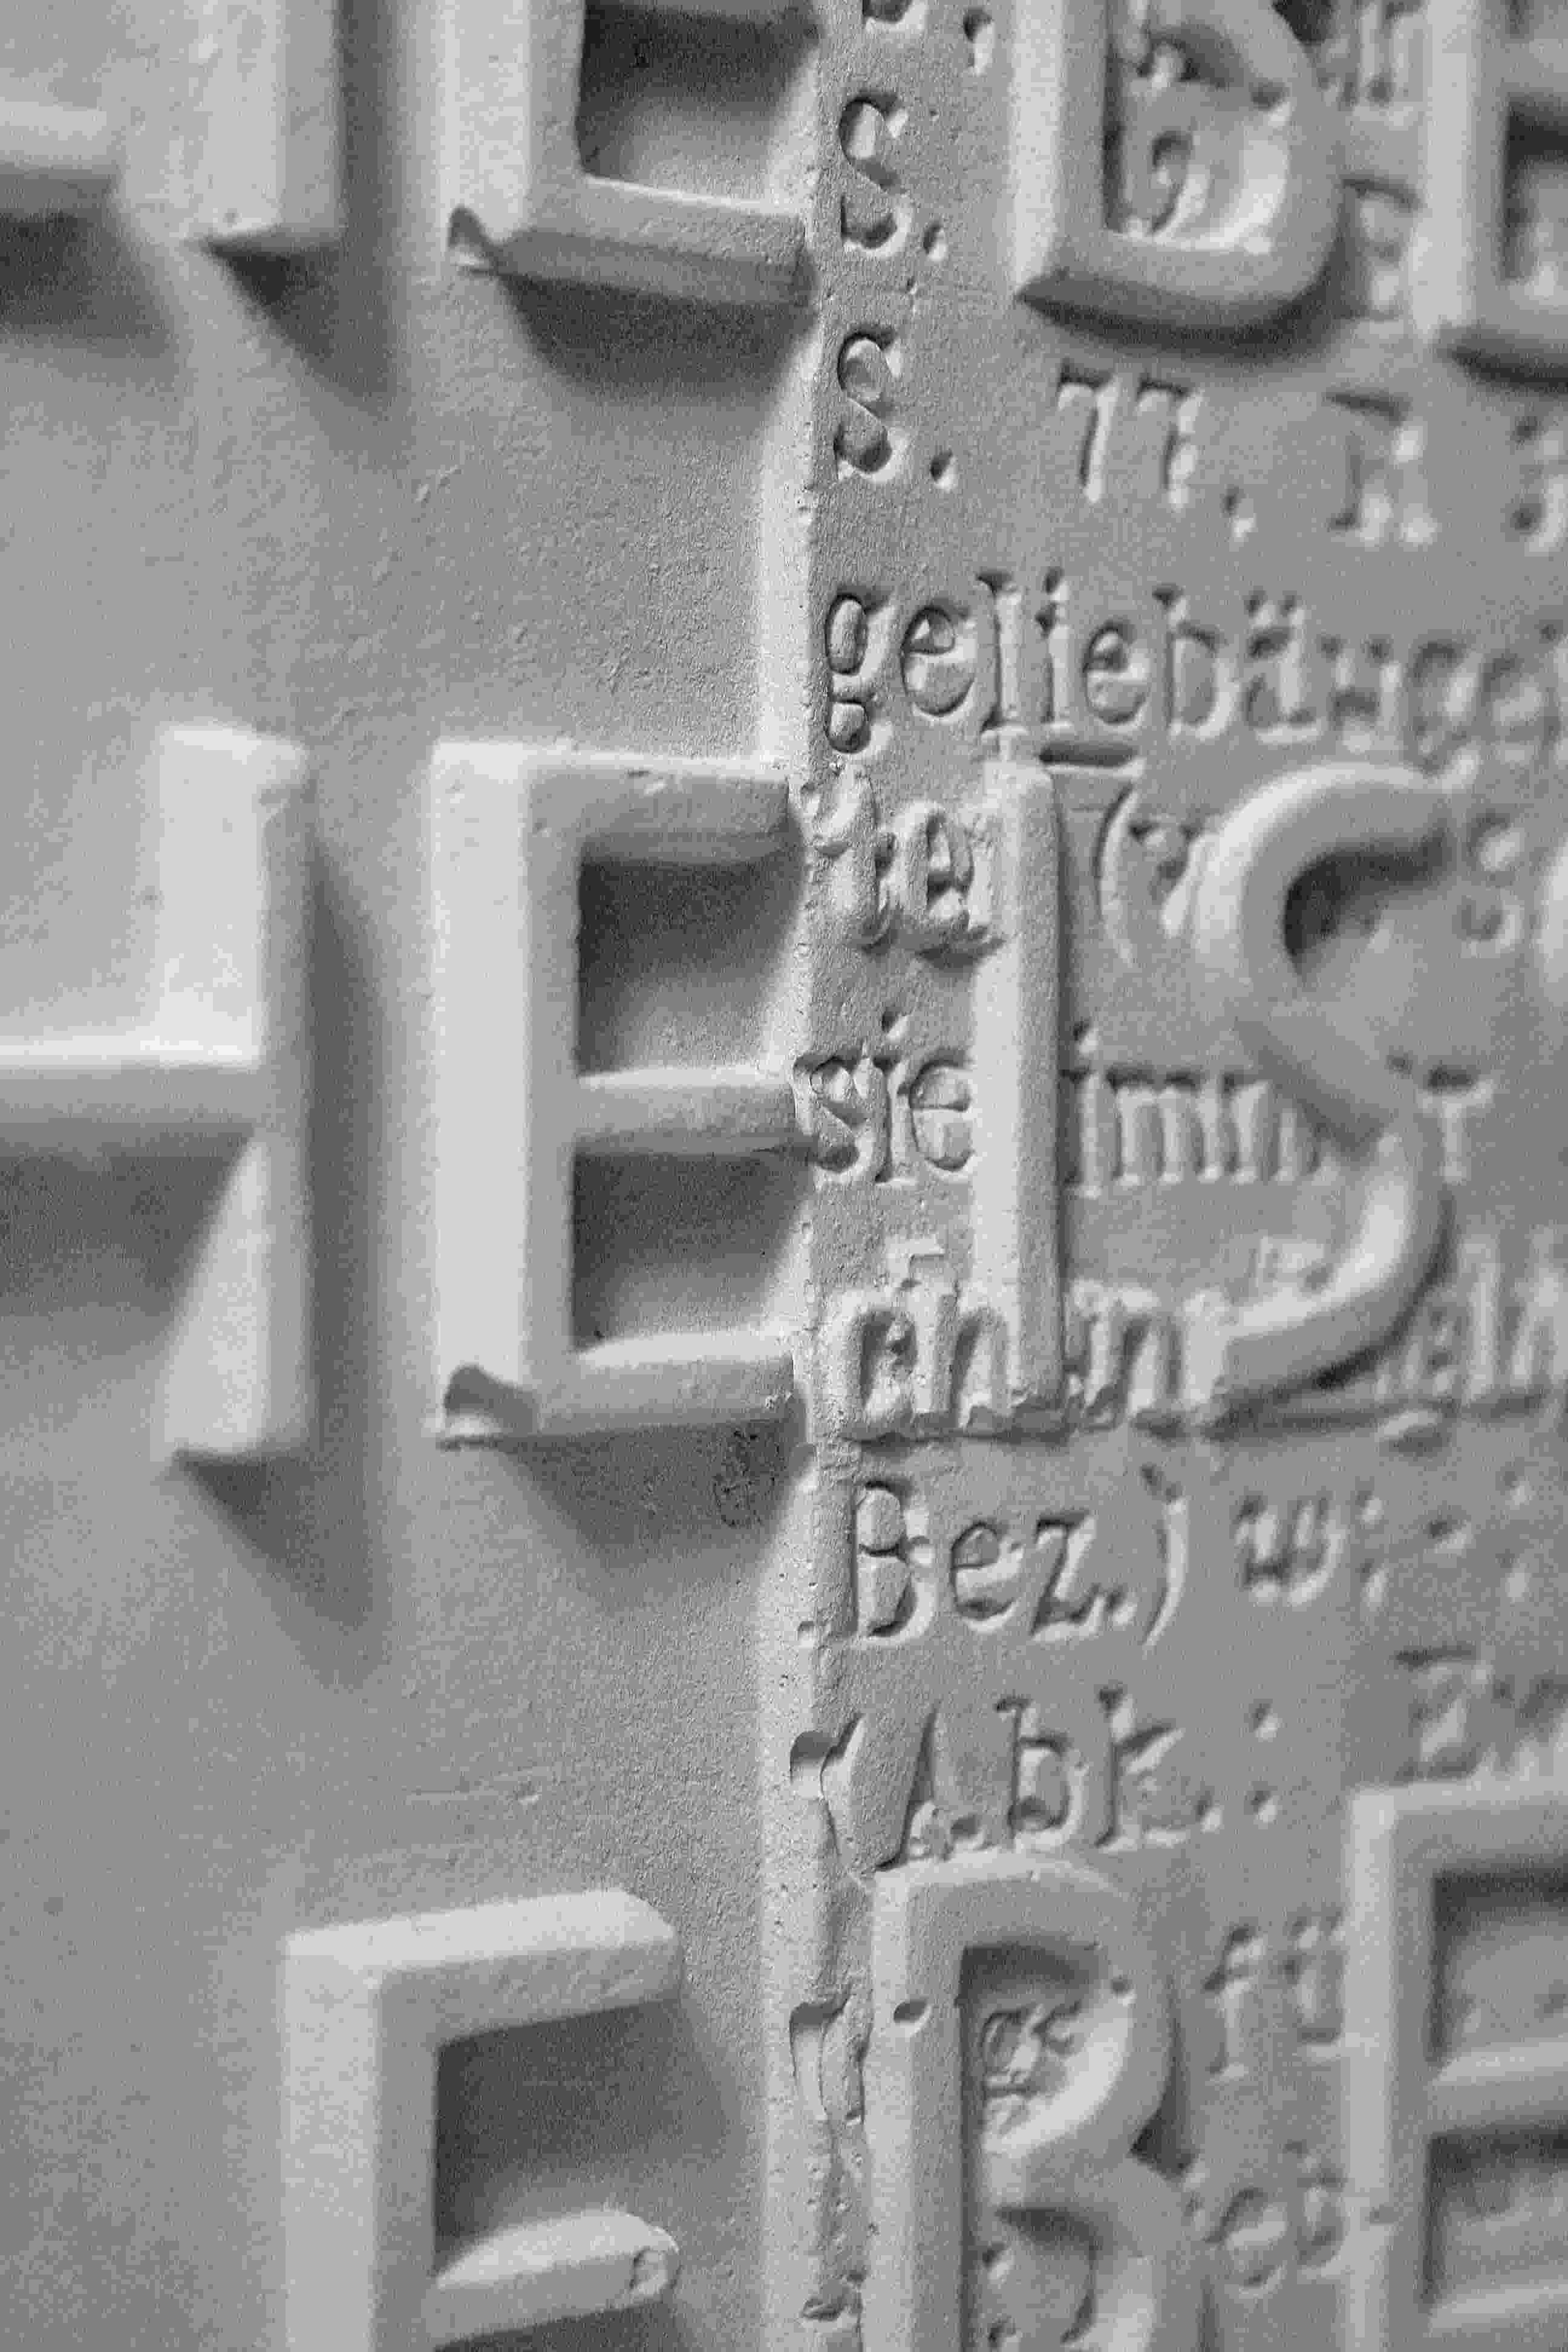 Letters in plaster